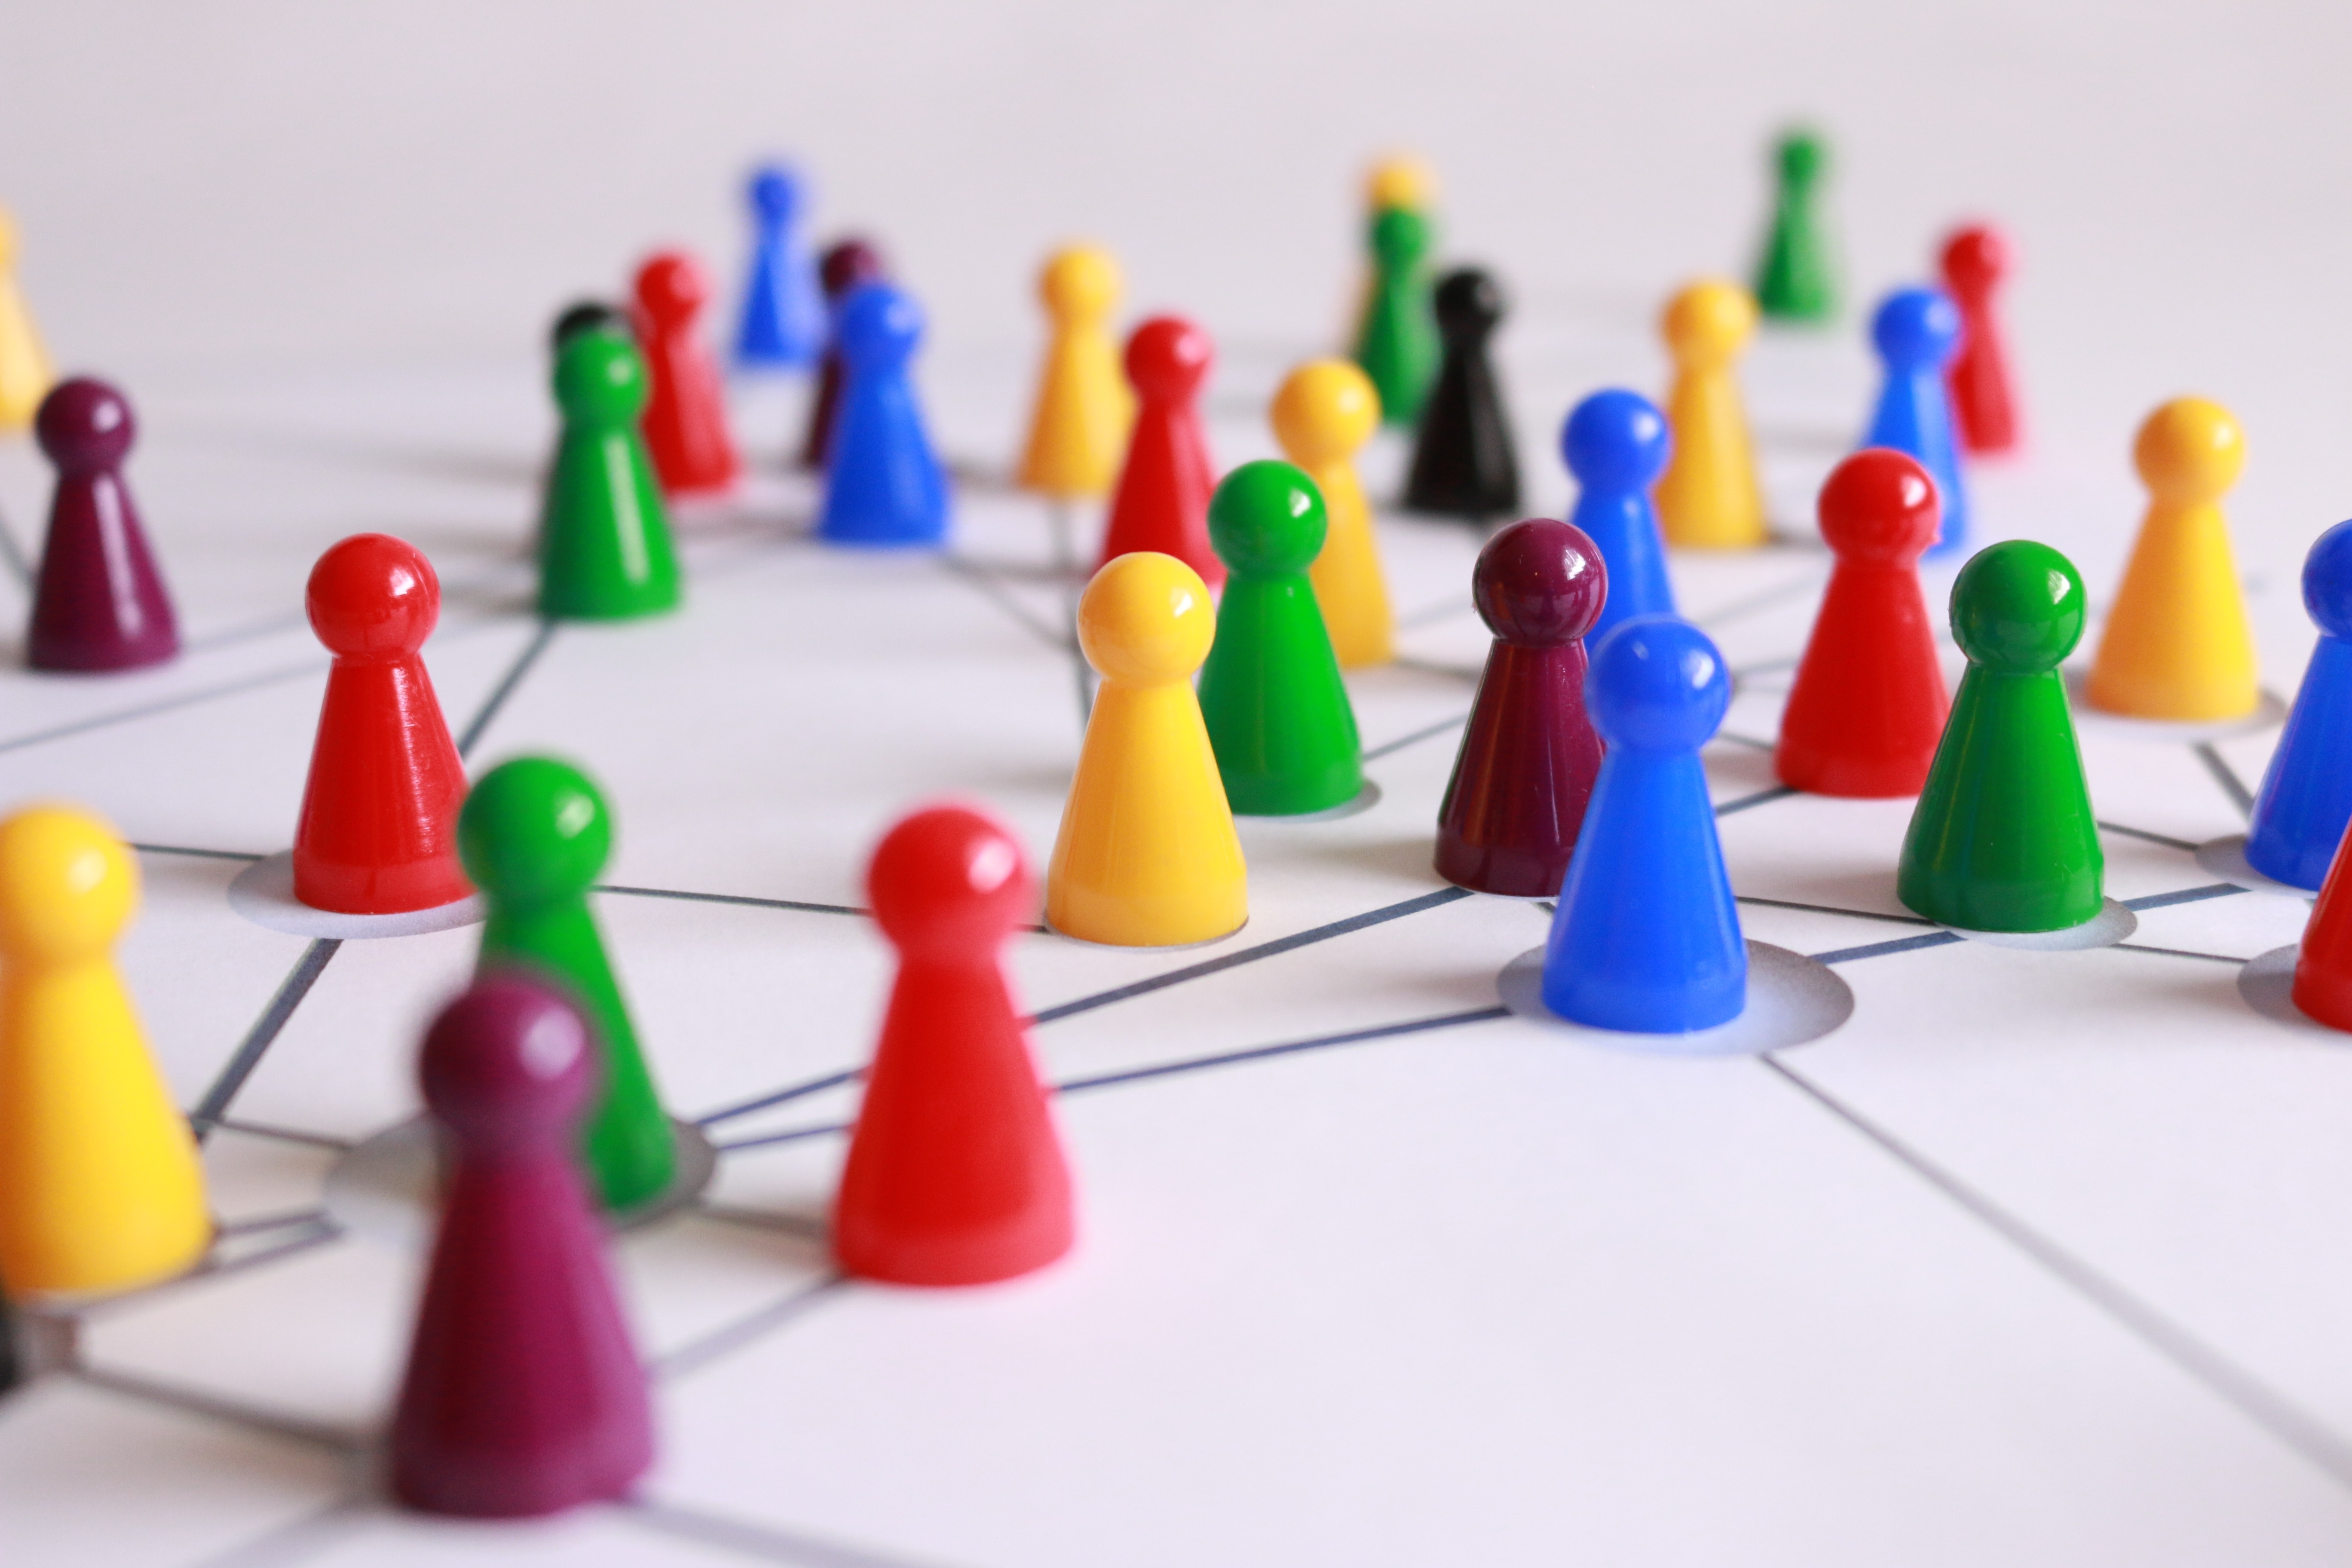 Image of a gameboard representing a network